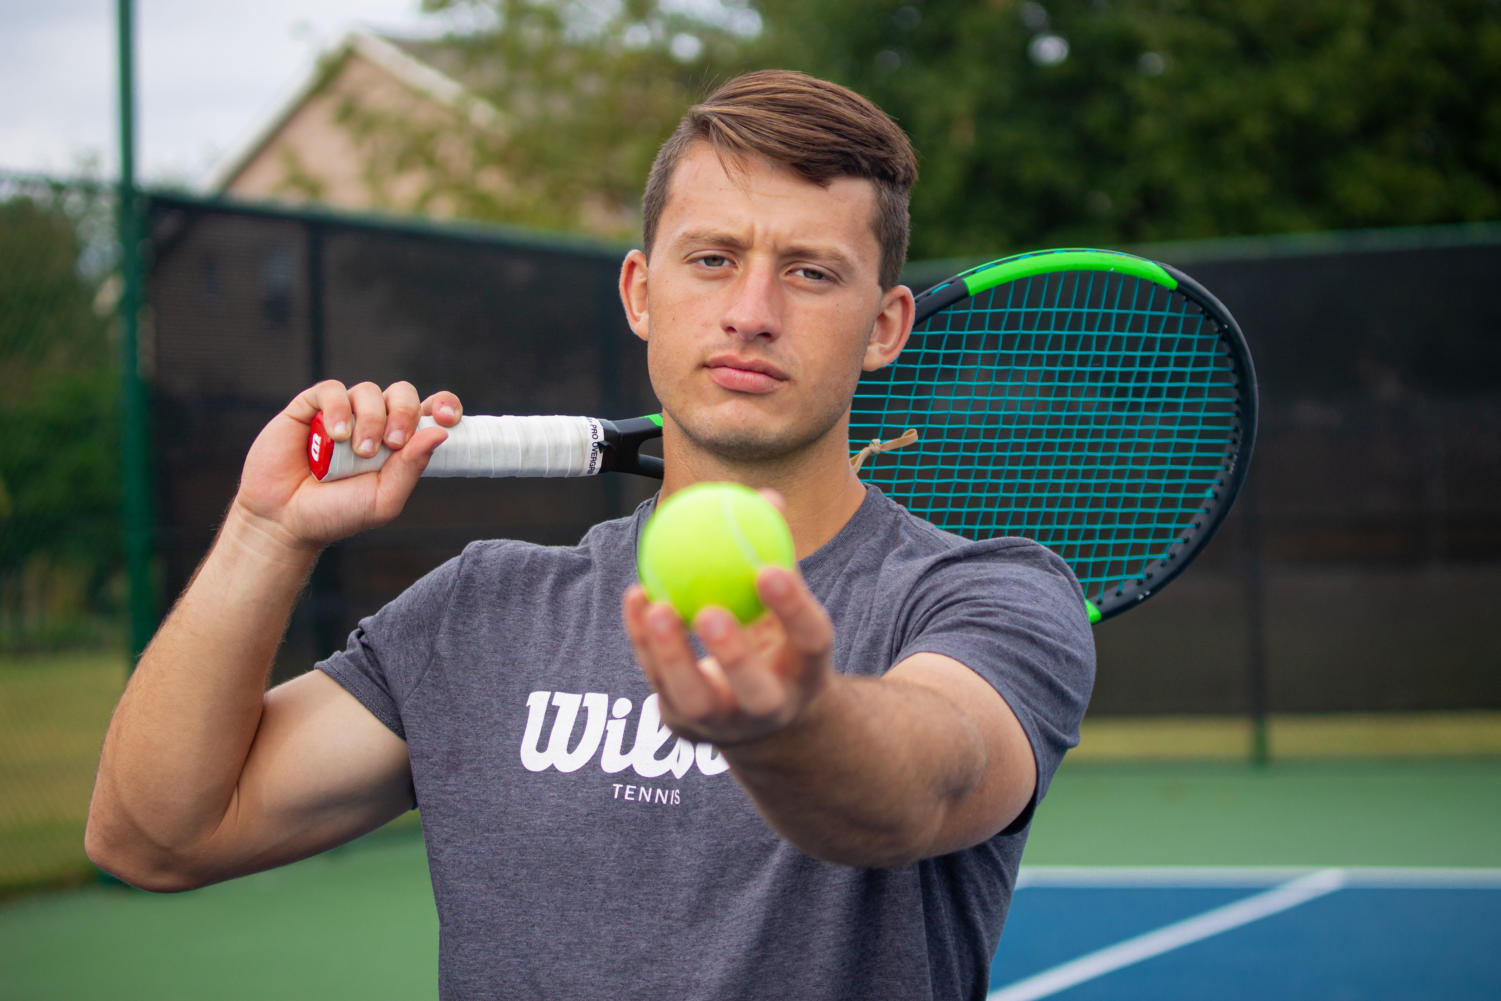 Senior Ryan Mouakket was inspired to give tennis a shot in sixth grade while watching it on TV with his dad. He now aspires to earn a state title.